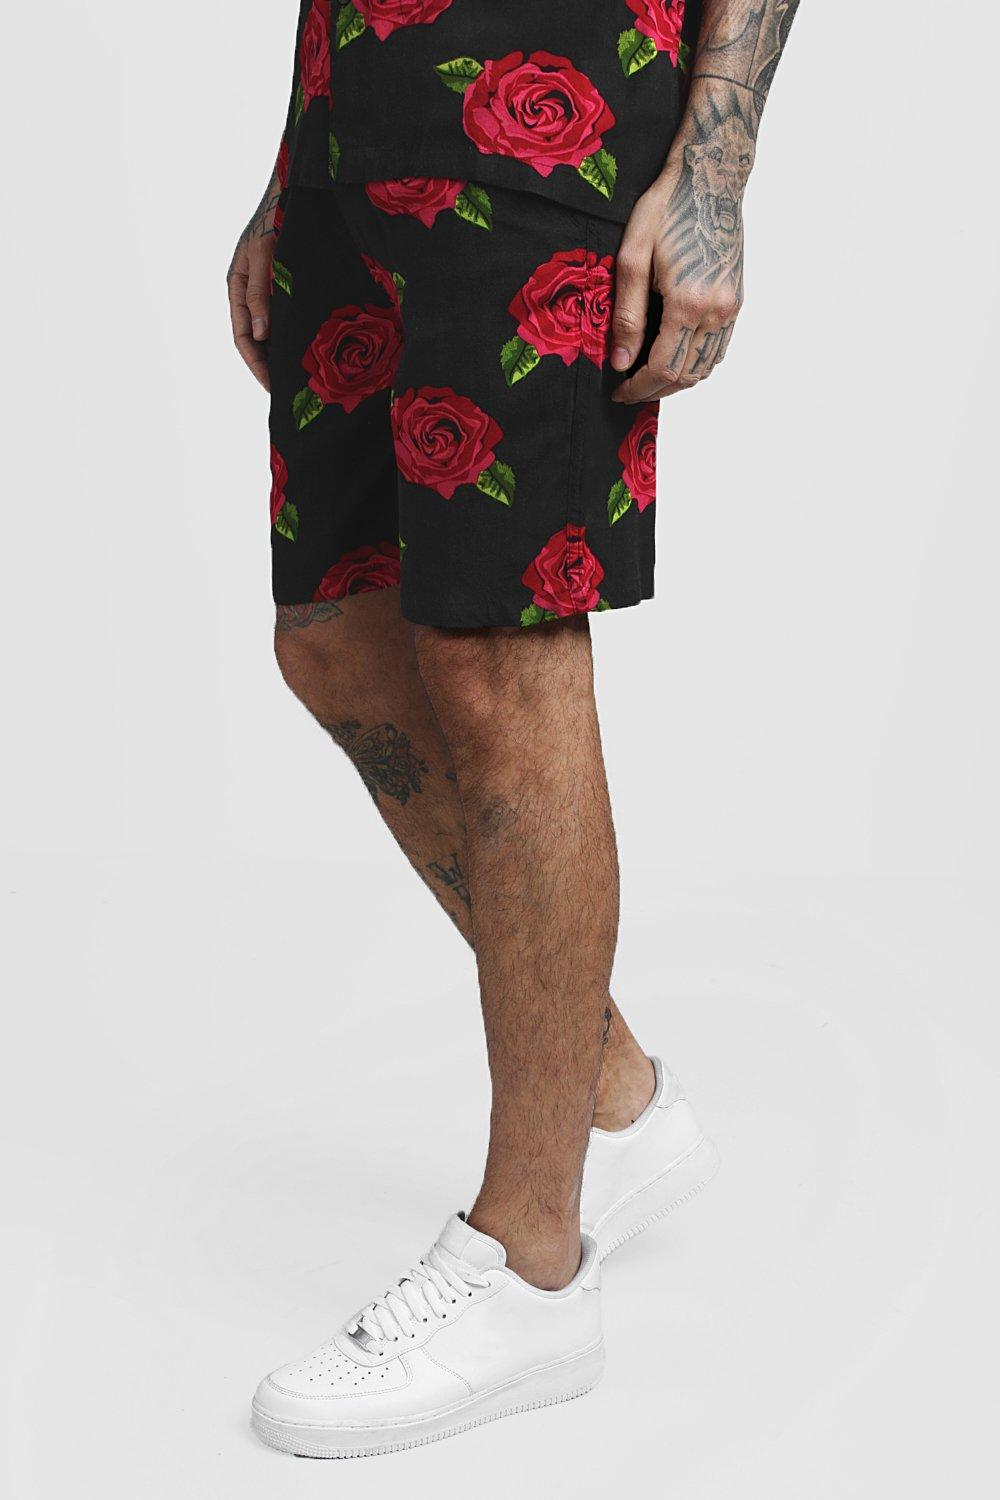 Rose Print Viscose Short